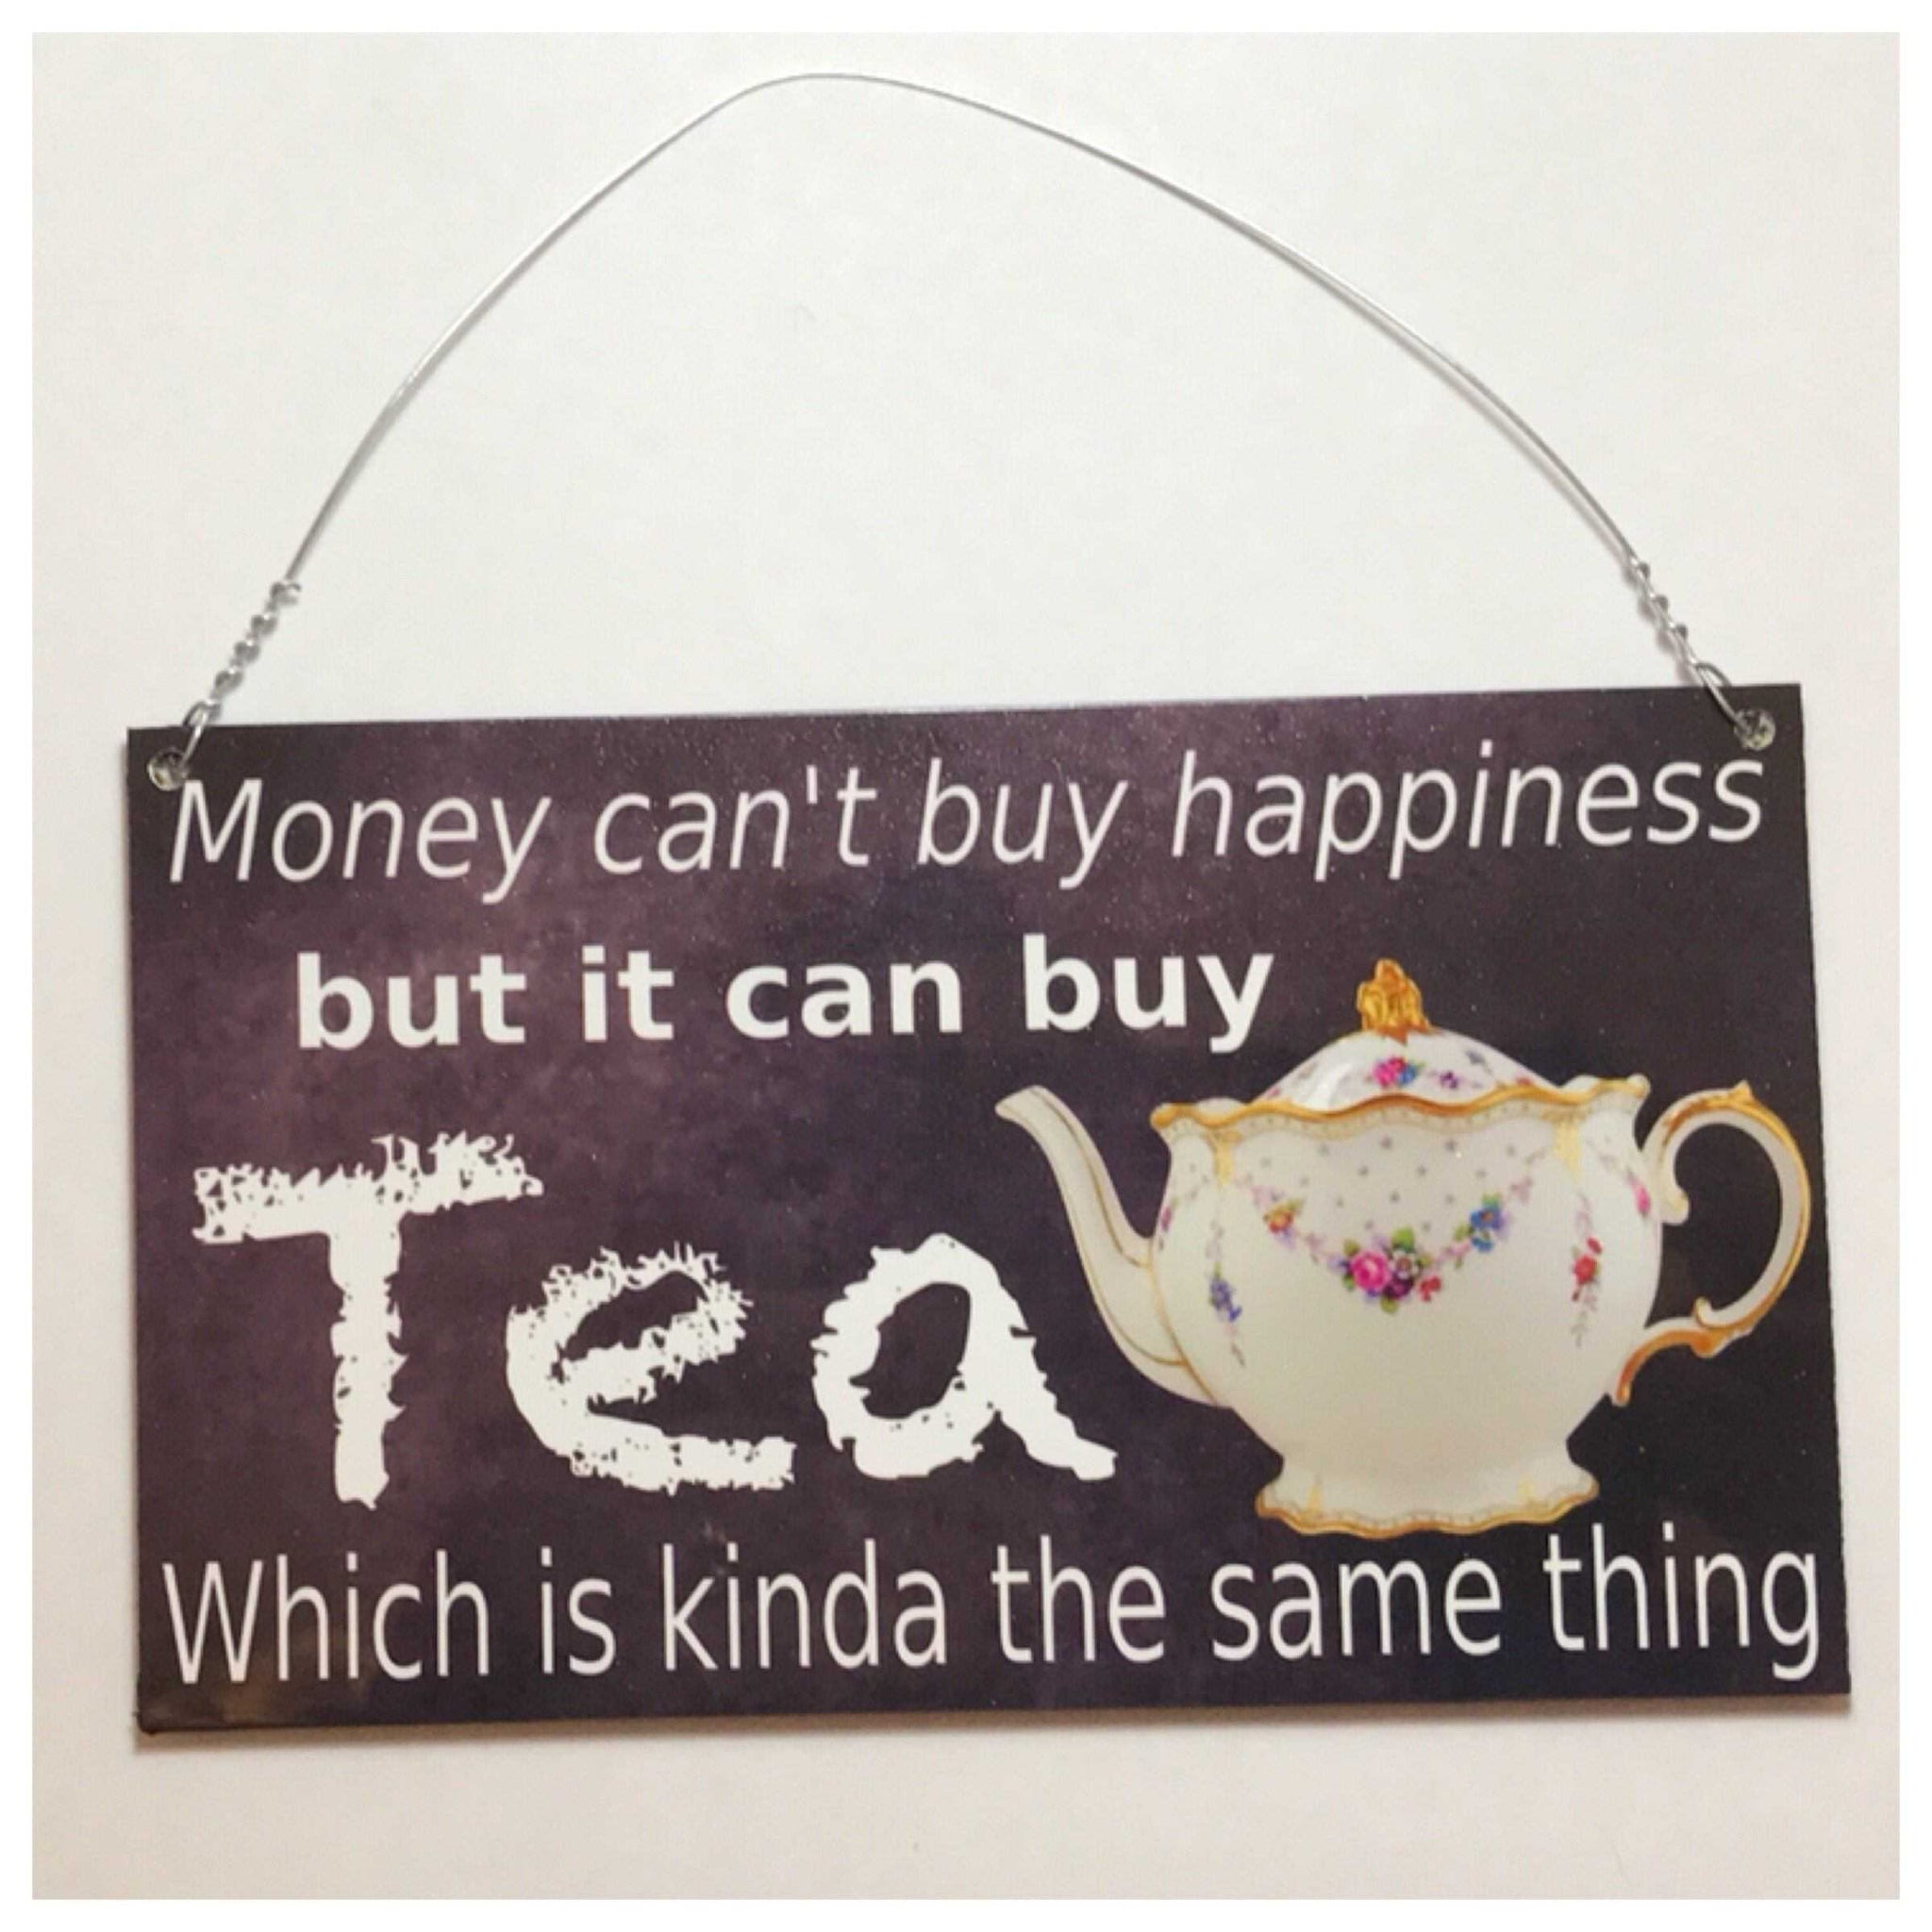 Money Cant Buy Happiness But It Can Buy Tea Sign Wall Plaque or Hanging - The Renmy Store